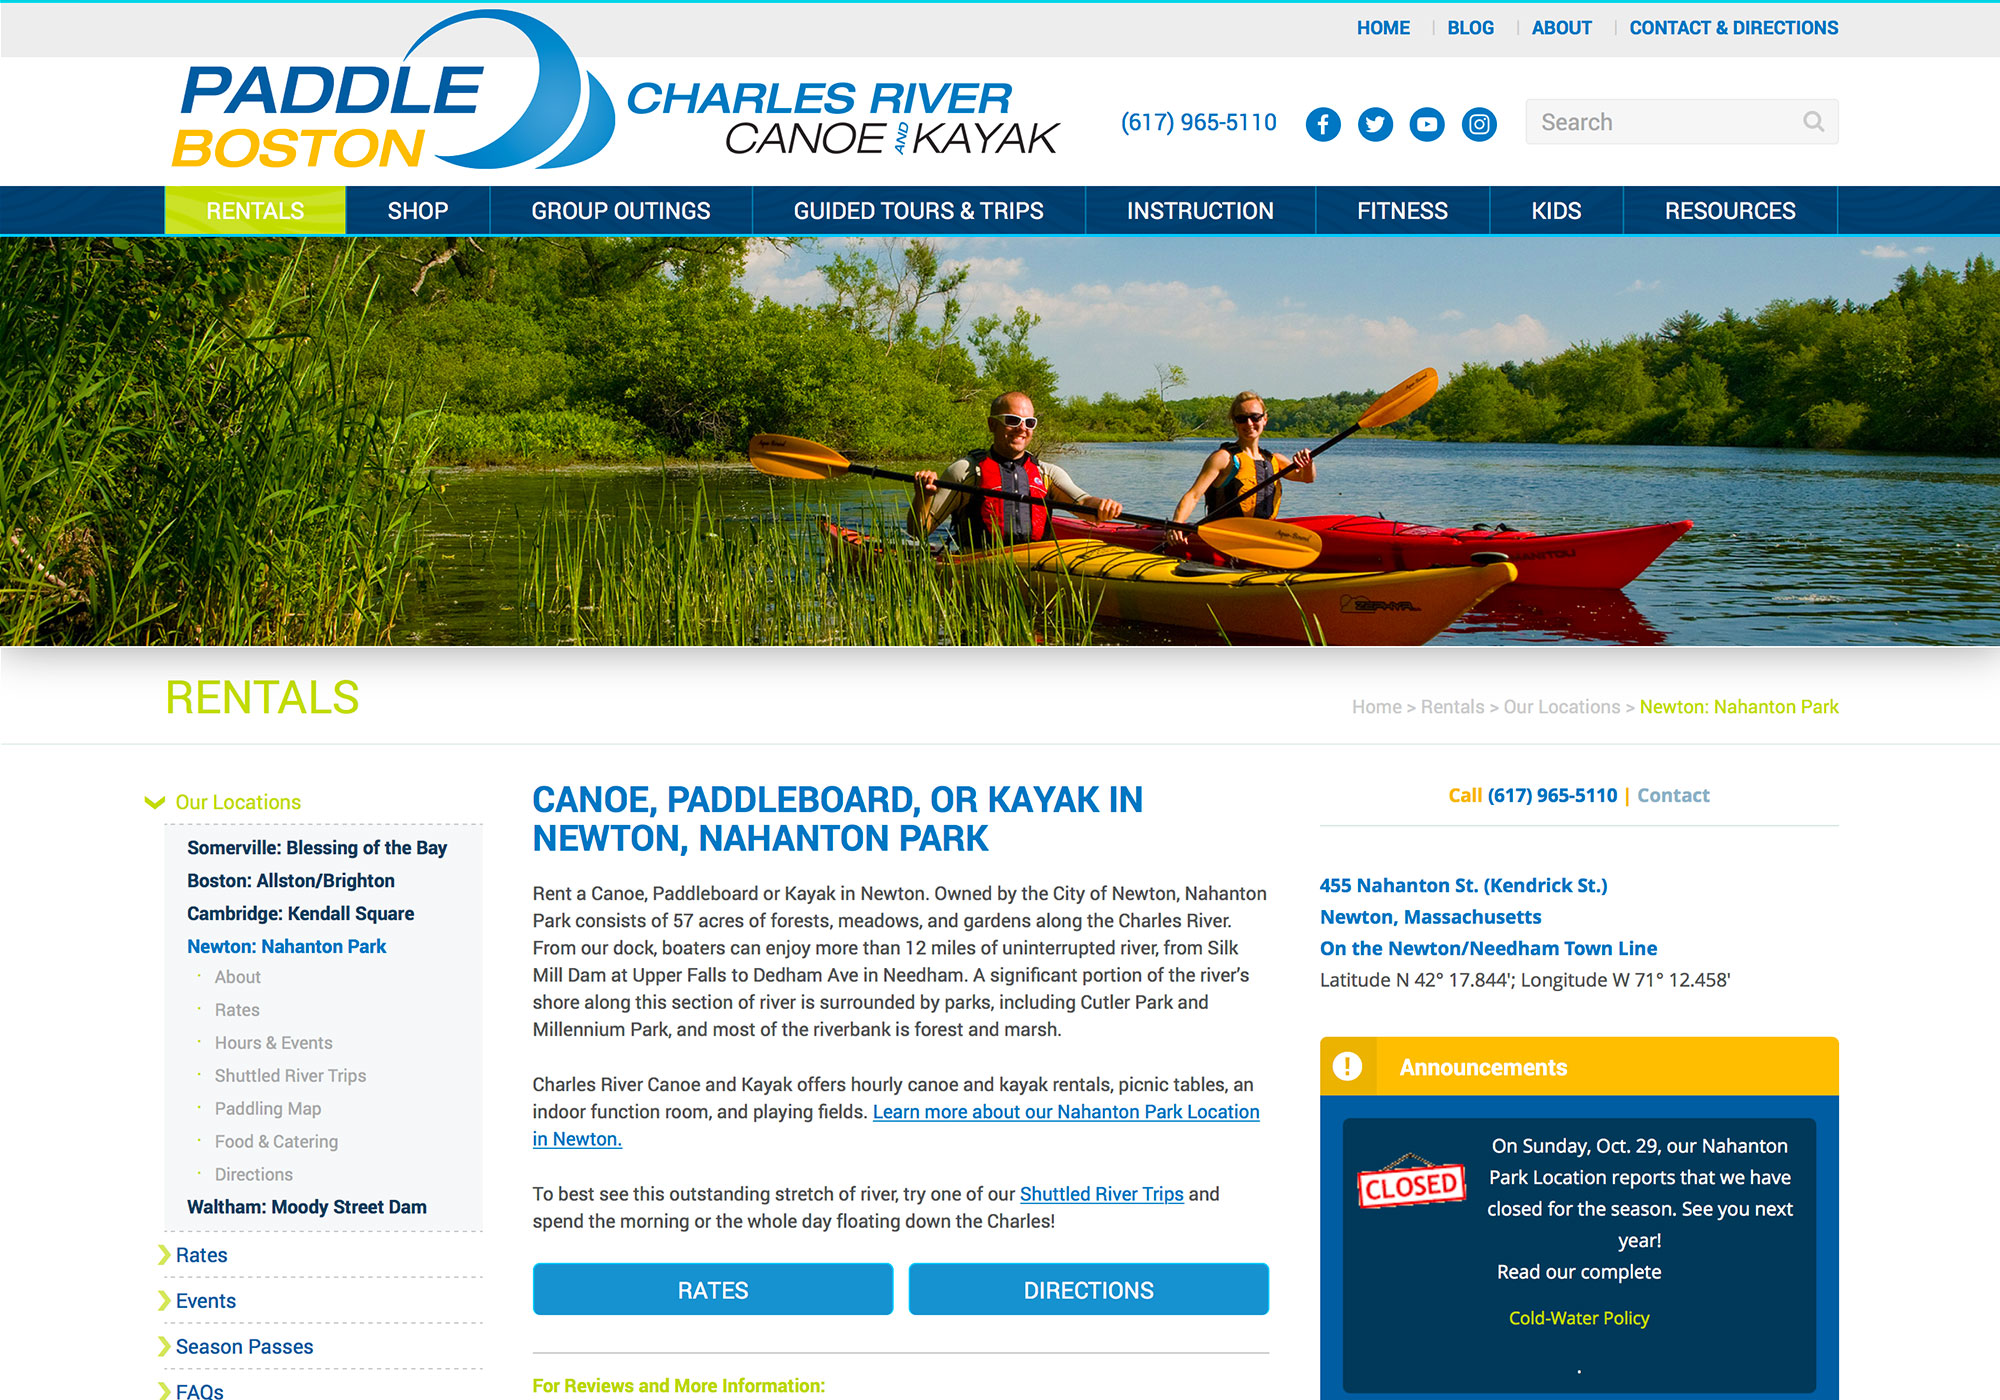 Wordpress website design for Paddle Boston in Cambridge, Waltham, Newton, Somerville, and Boston Massachusetts. Website design by Portland, Maine website design company, SlickFish Studios.